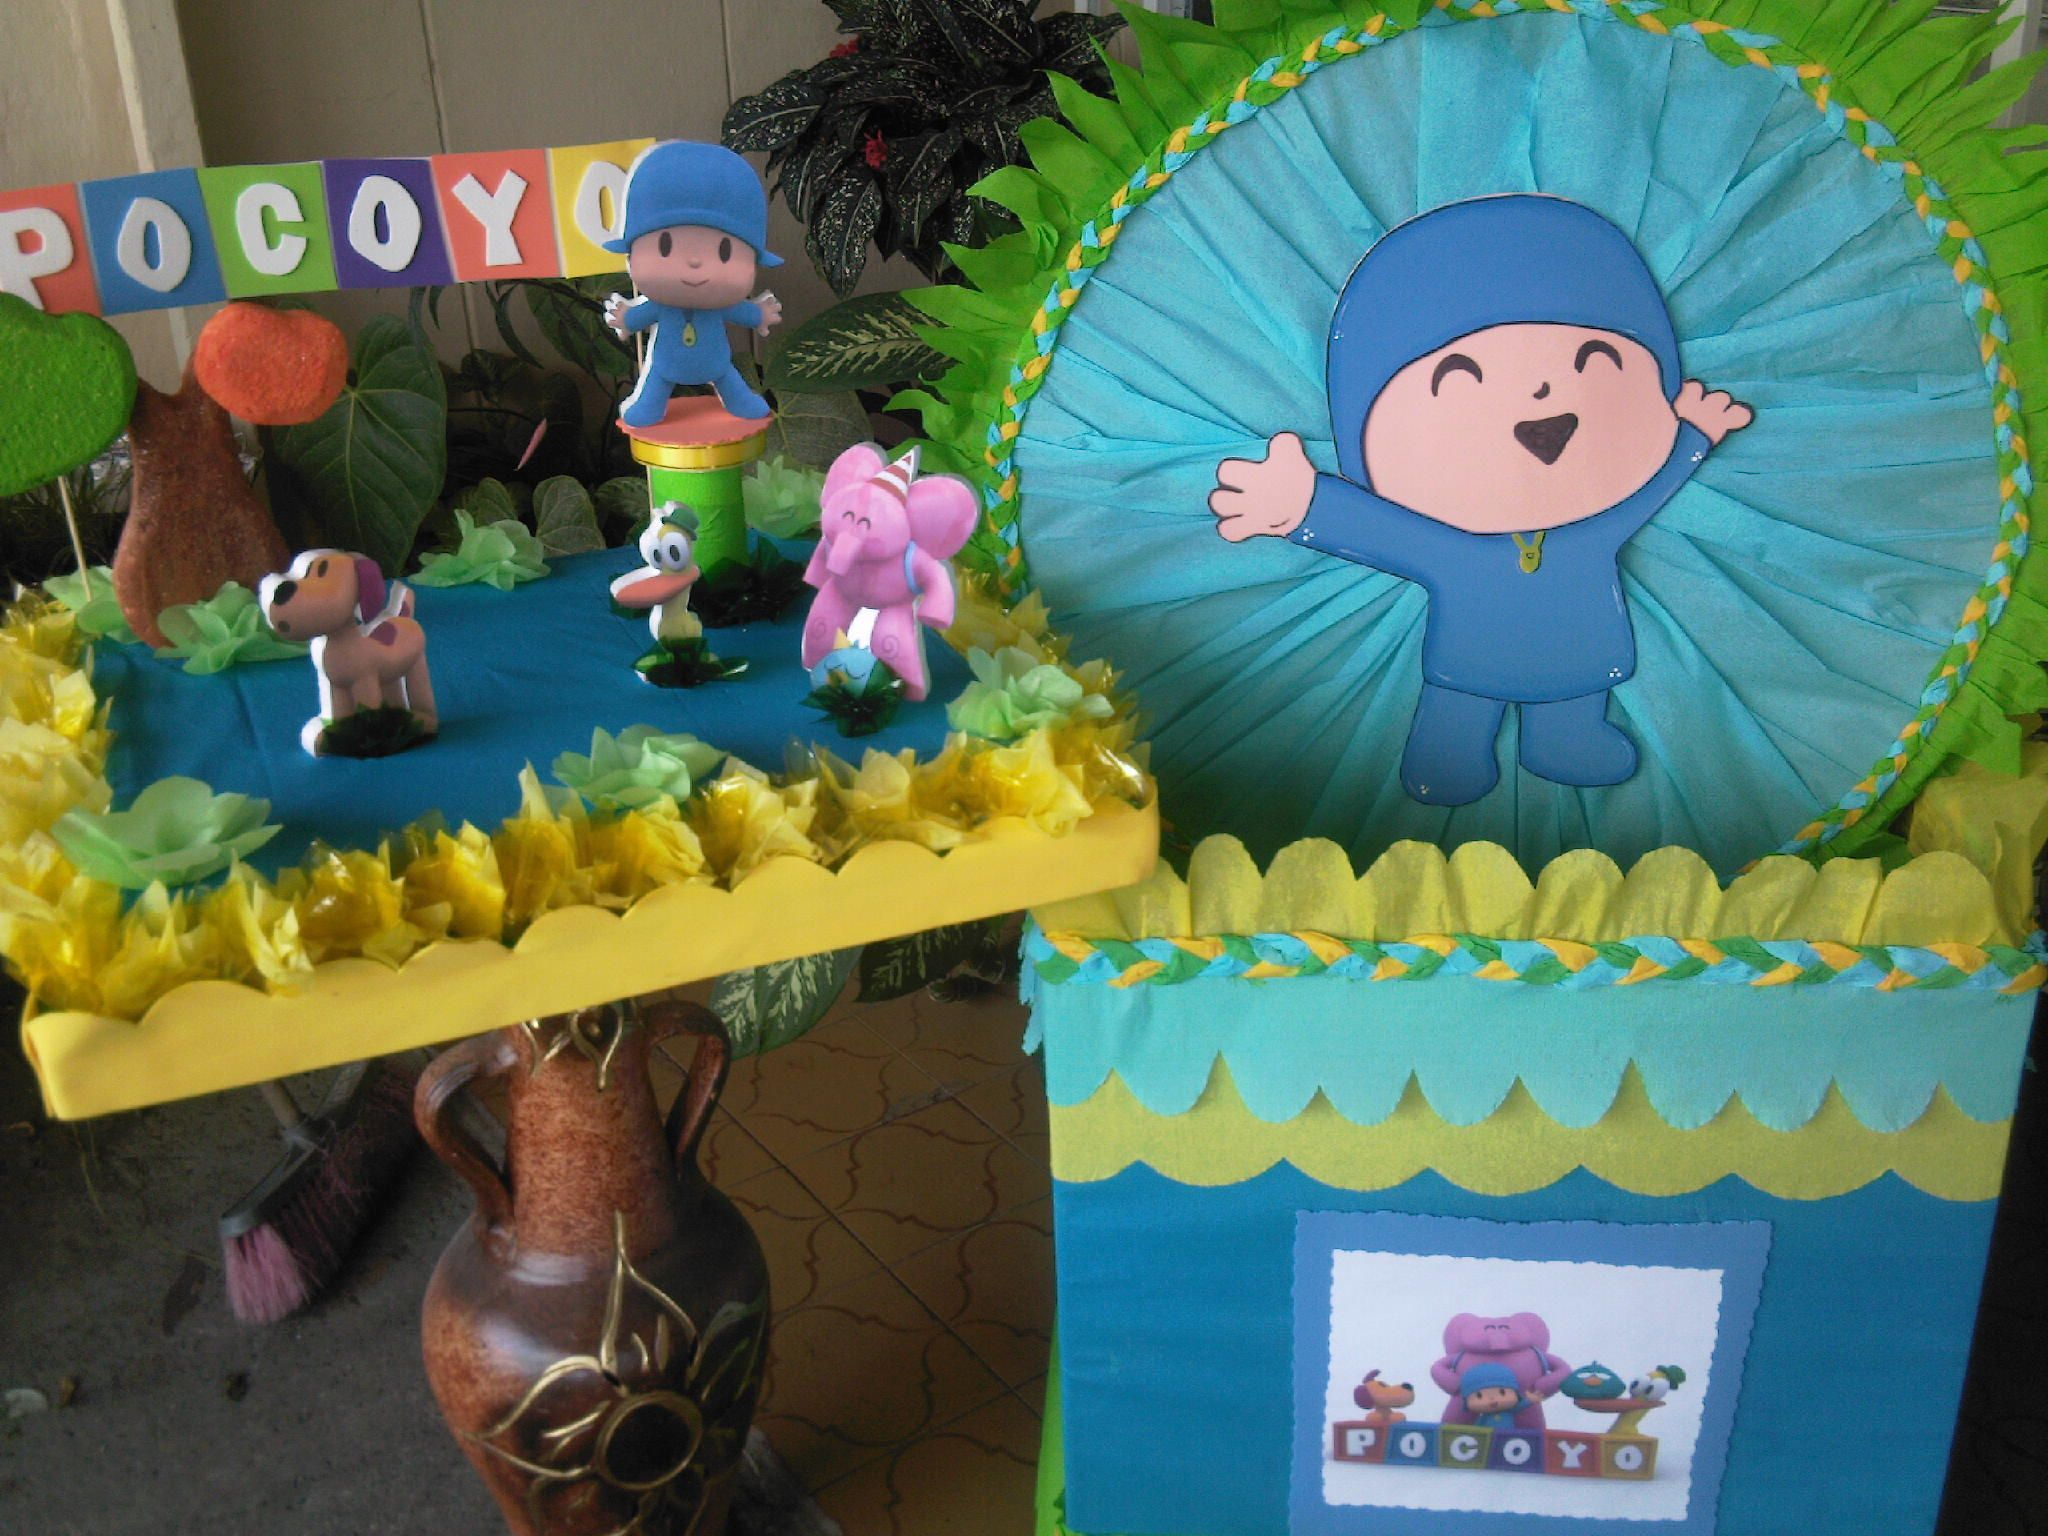 Pocoyo decorations fiesta pocoyo decoraci n imagui for Decoracion para fotos